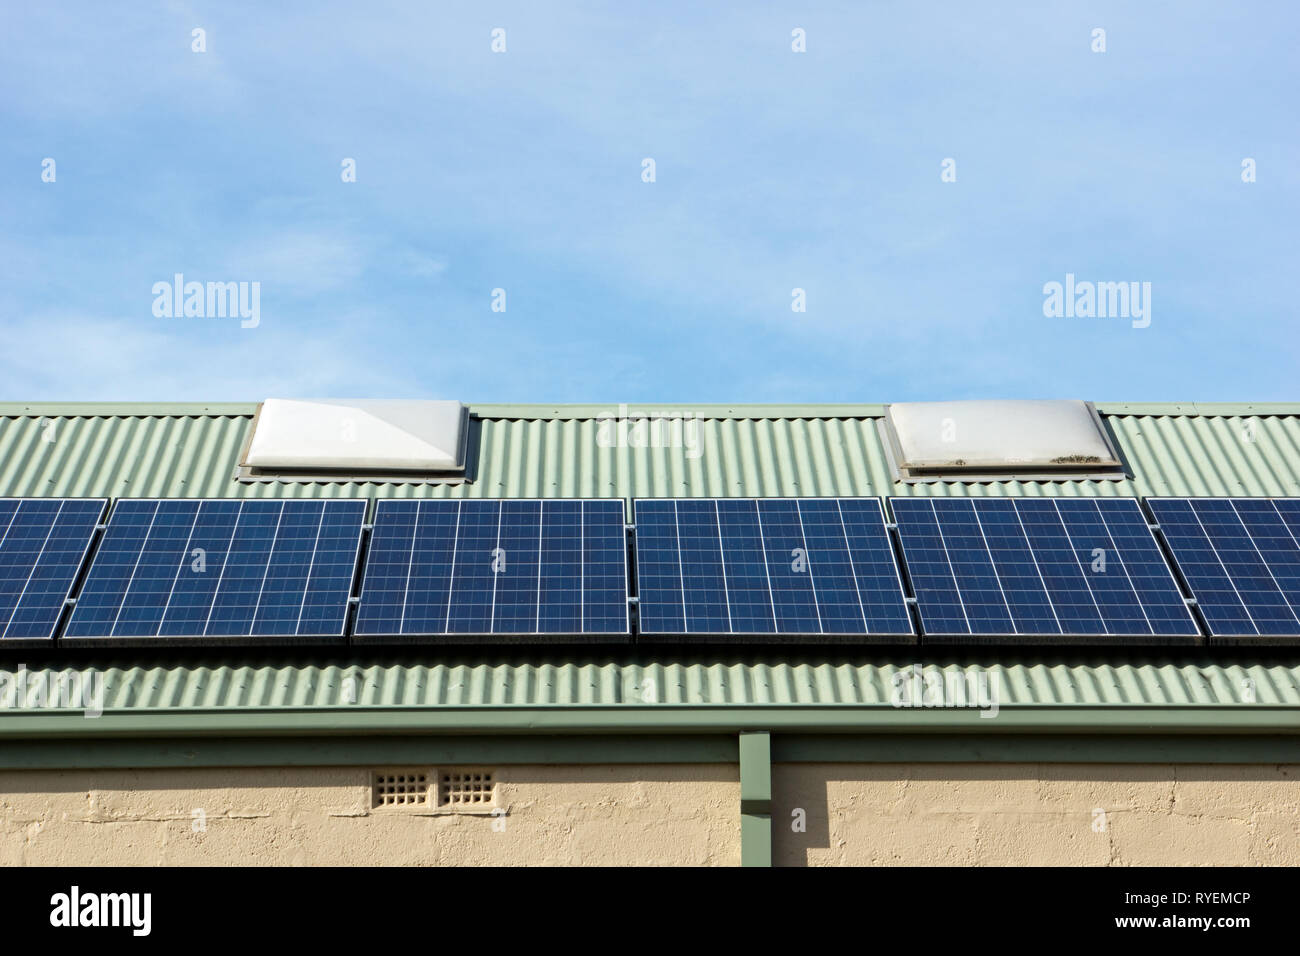 Building solar panels on roof in Victoria, Australia. The photovoltaic cells are an alternative energy, sustainable resource. - Stock Image